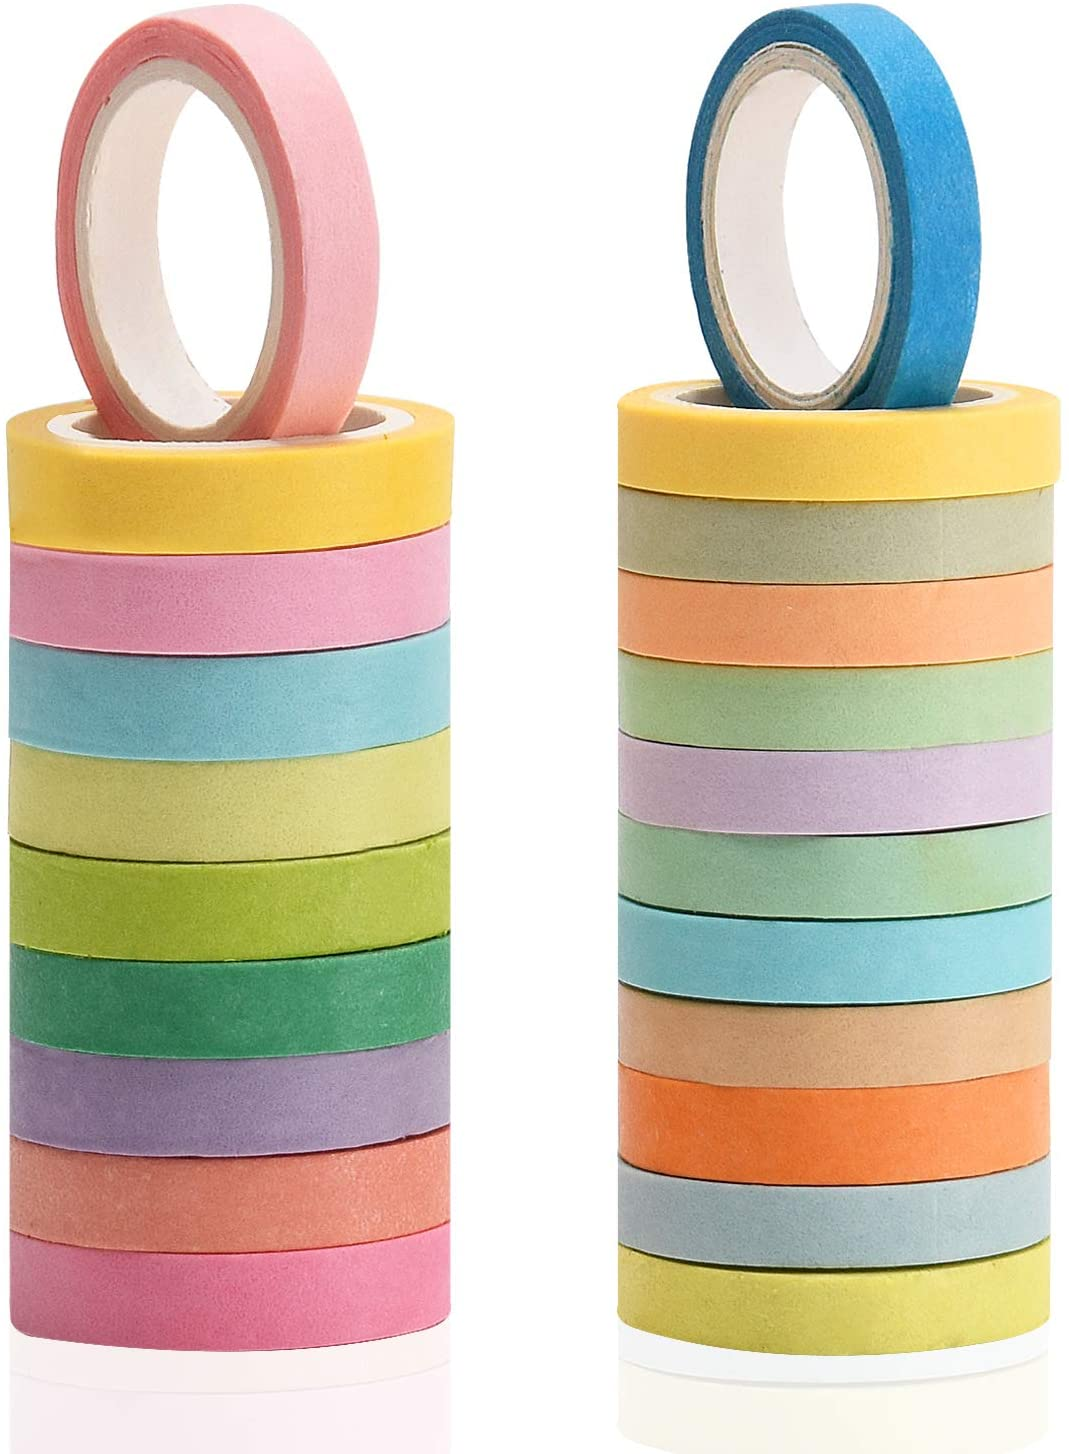 Noverlife 44PCS Colorful Masking Tape, Pinkycolor Washi Tape Decorative Labelling Tape Teaching Supplies for DIY Arts Crafts Scrapbooking, Wall Art, Posters, Greeting Cards, Picture Frames, Gift Wrap